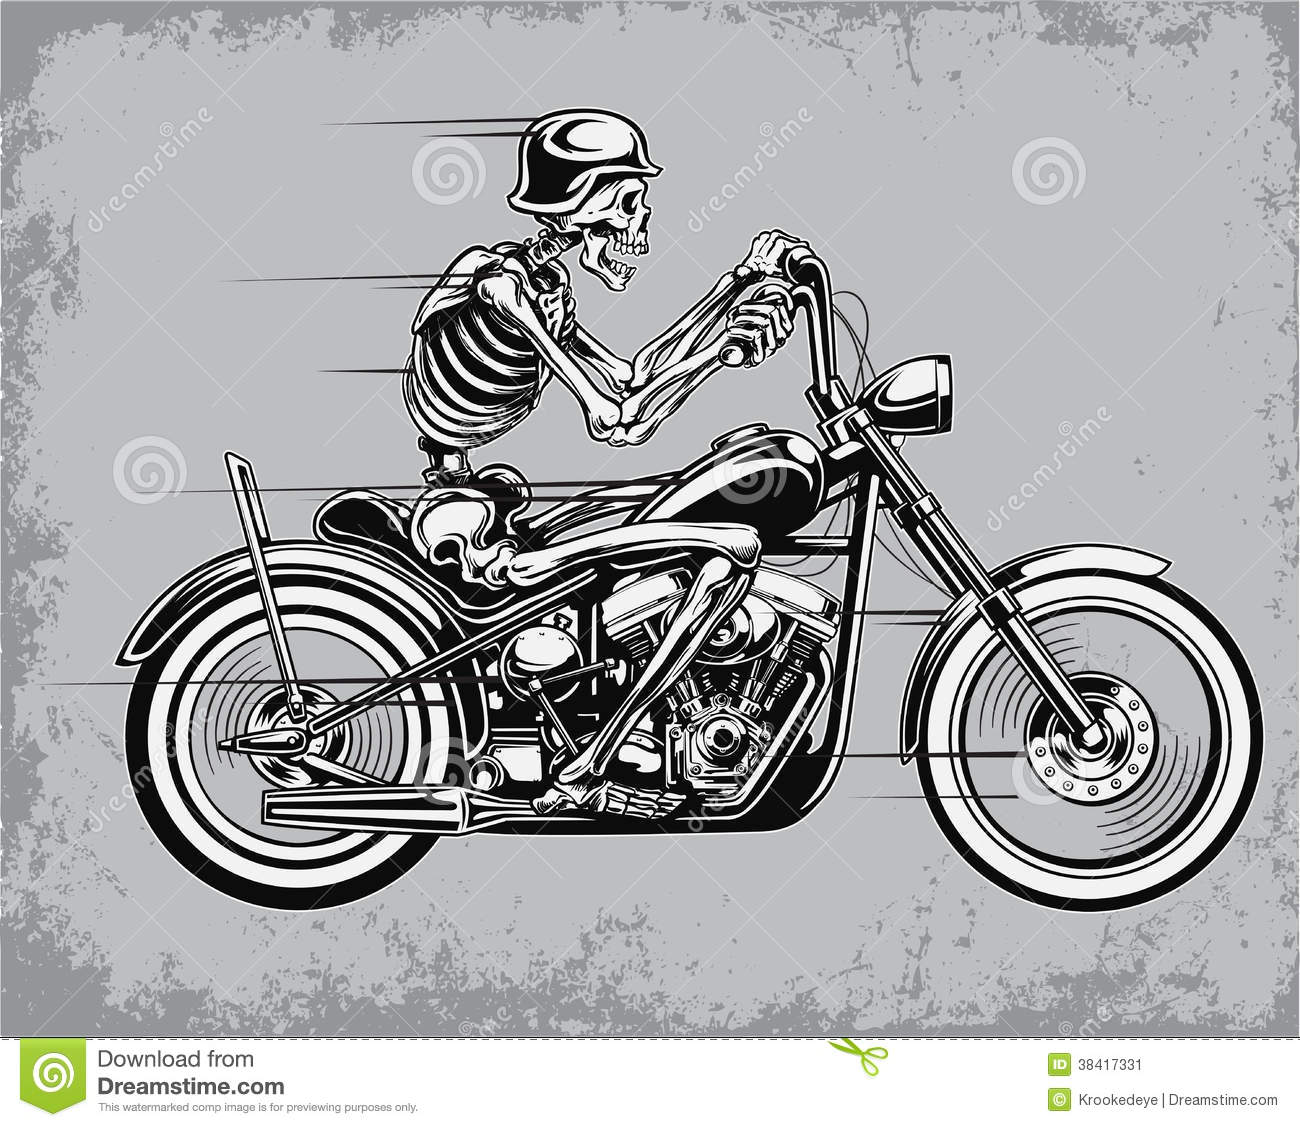 Sleleton clipart riding motorcycle Bike From Over Download Style